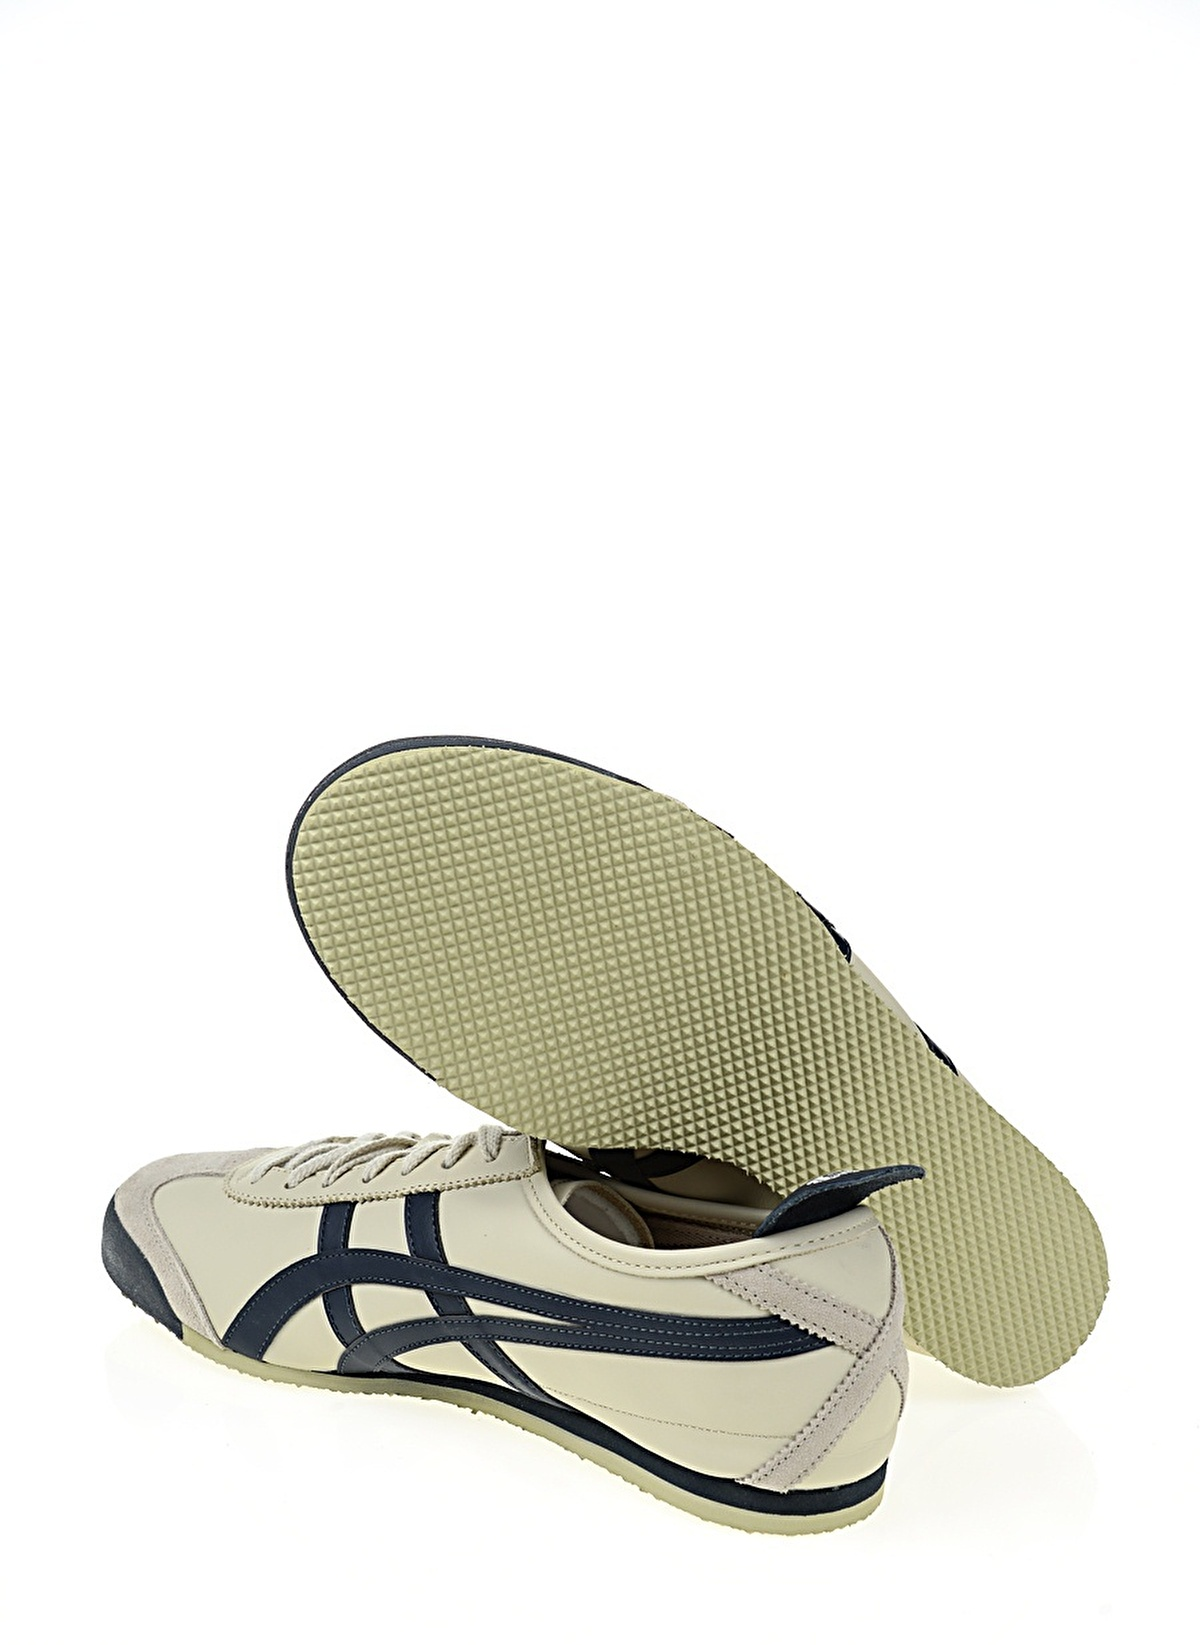 detailed look 96828 8bdae HL202-1659 Mexico 66,Birch/Navy,39,5